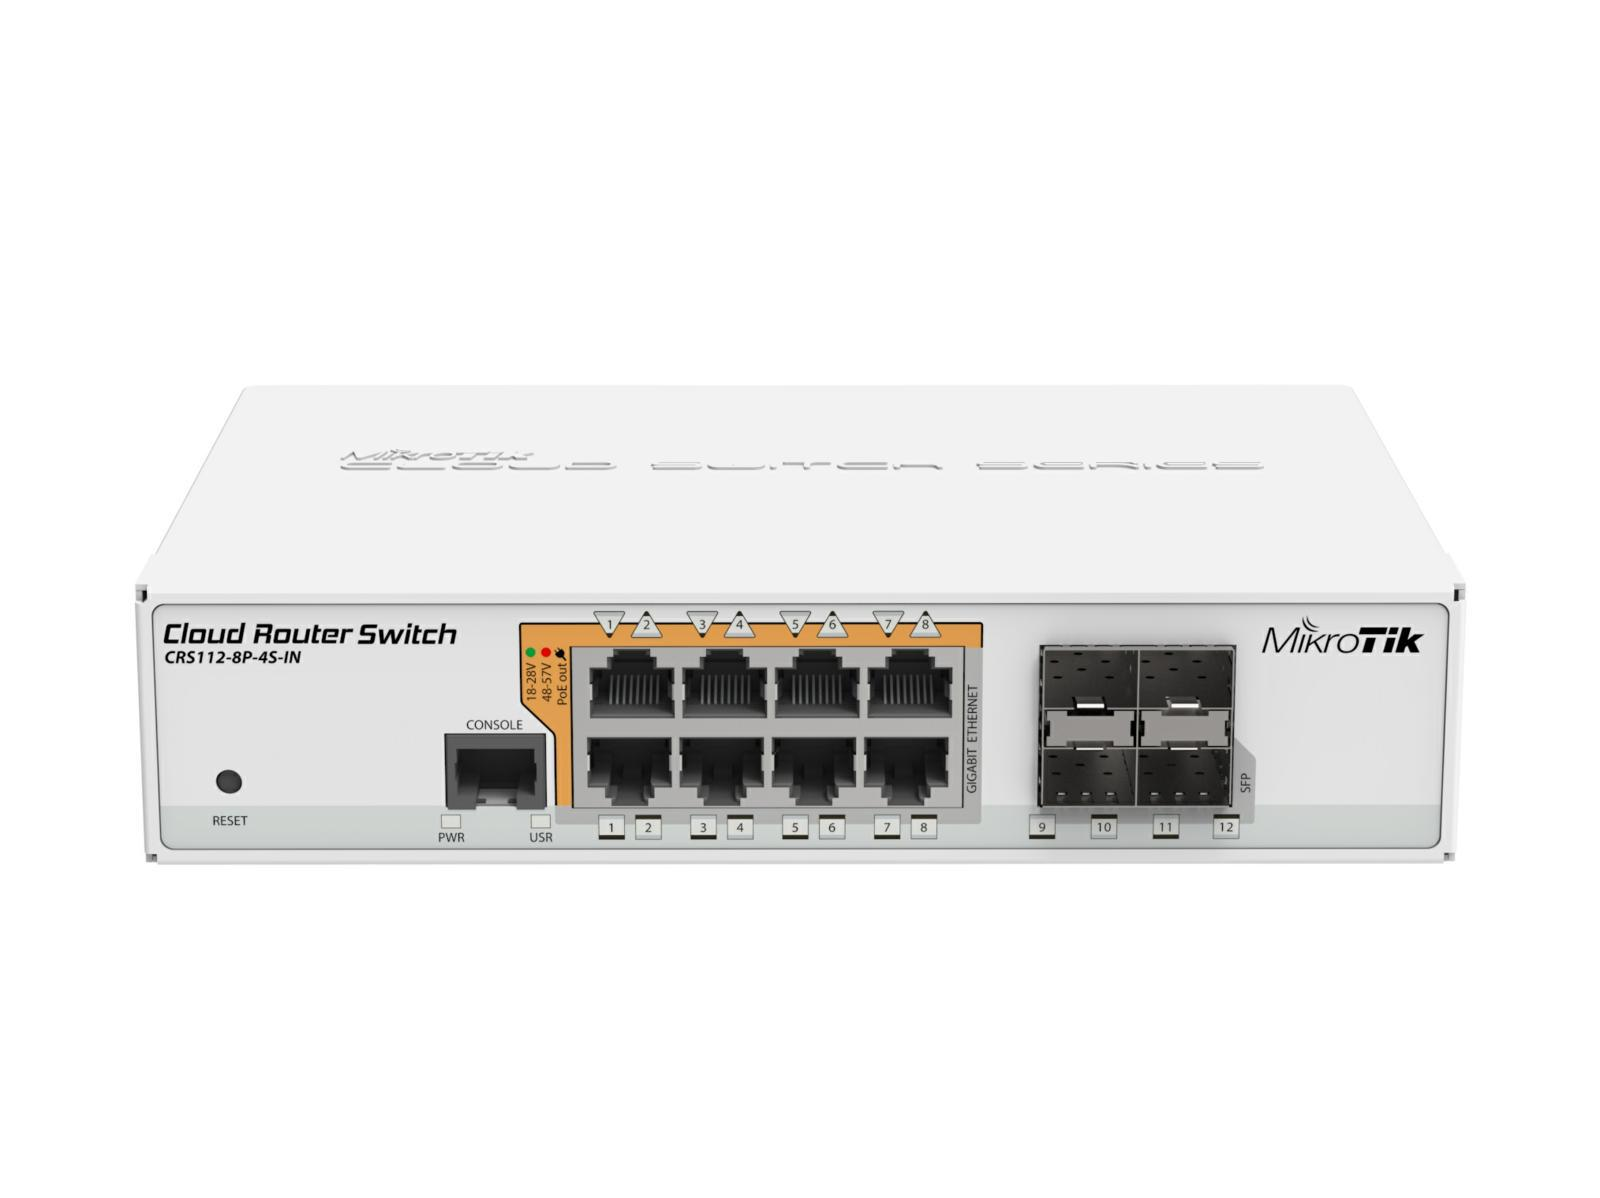 SICE Distributore Ufficiale  Switches Cloud Router Switch 8 PoE out Gigbit Ethernet ports with 4 SFP | CRS112-8P-4S-IN